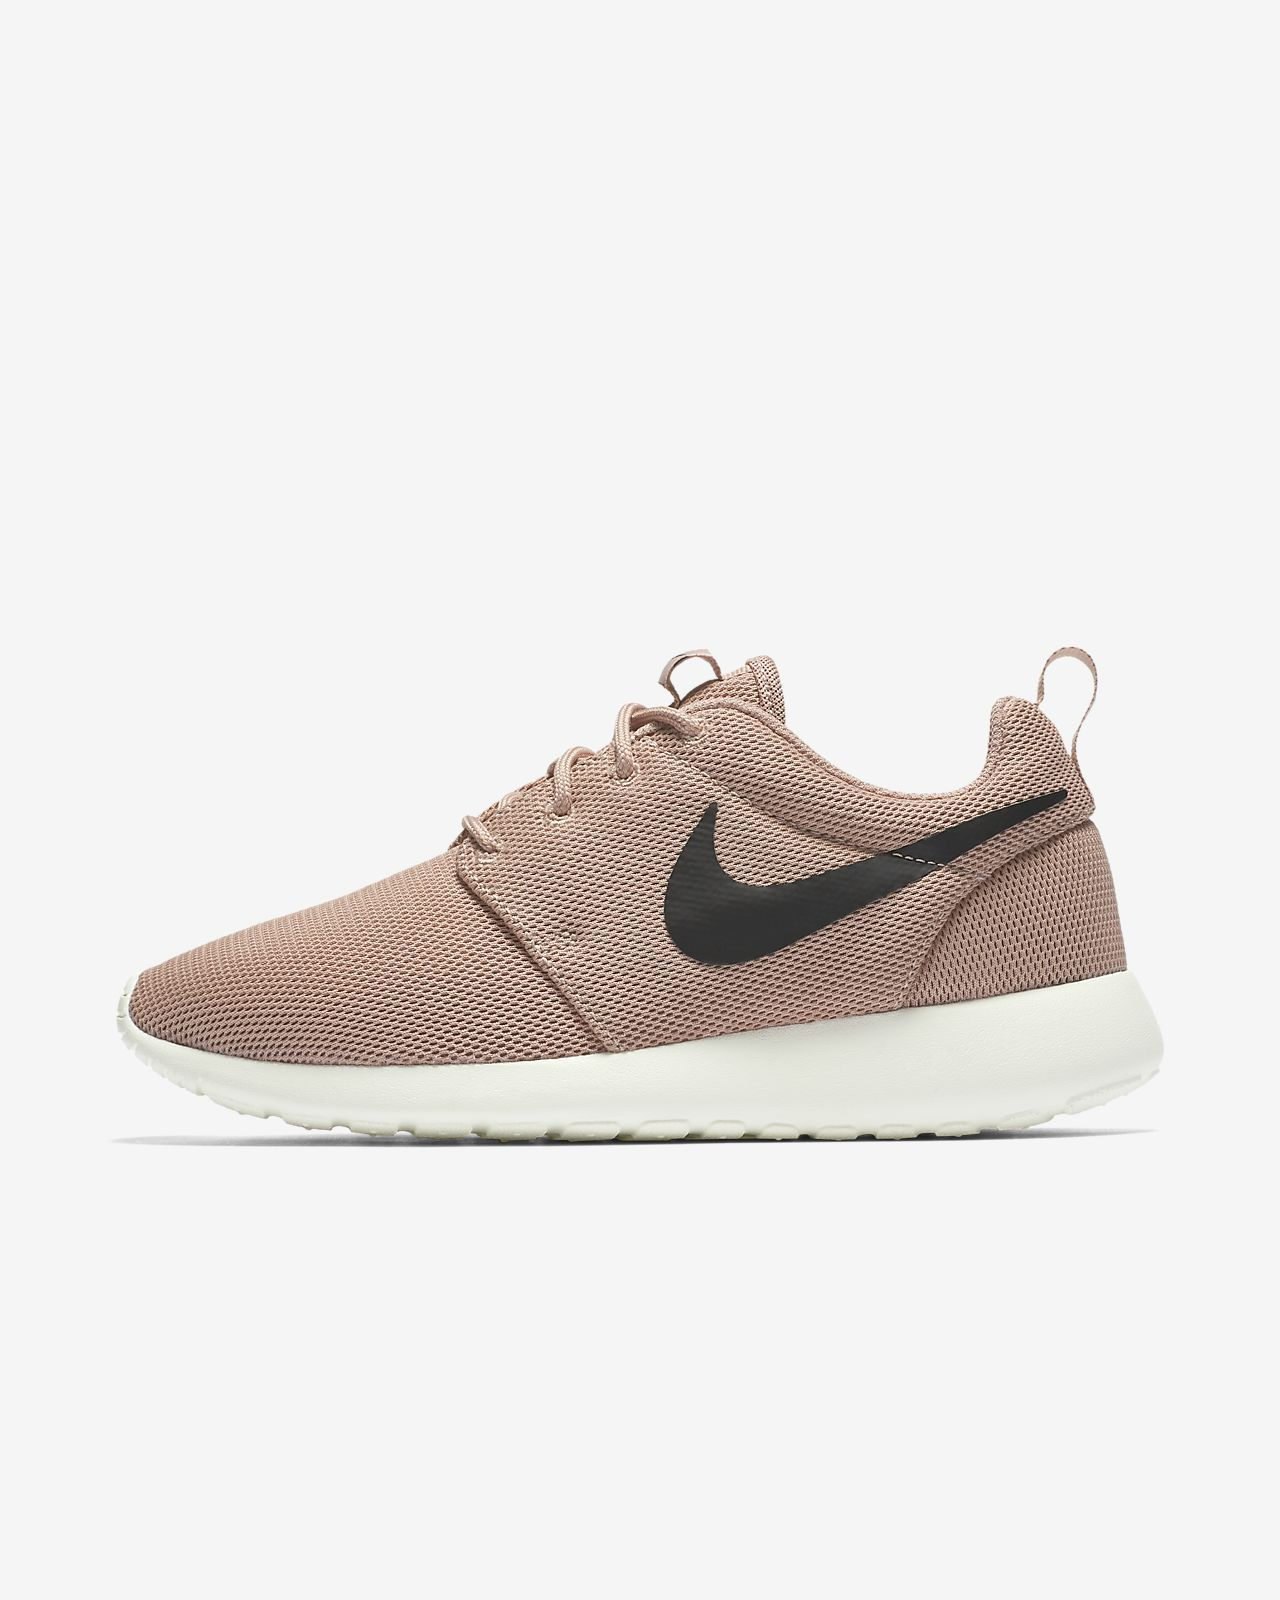 Nike Roshe One Women's Shoe: Port Wine Color, size 7.5